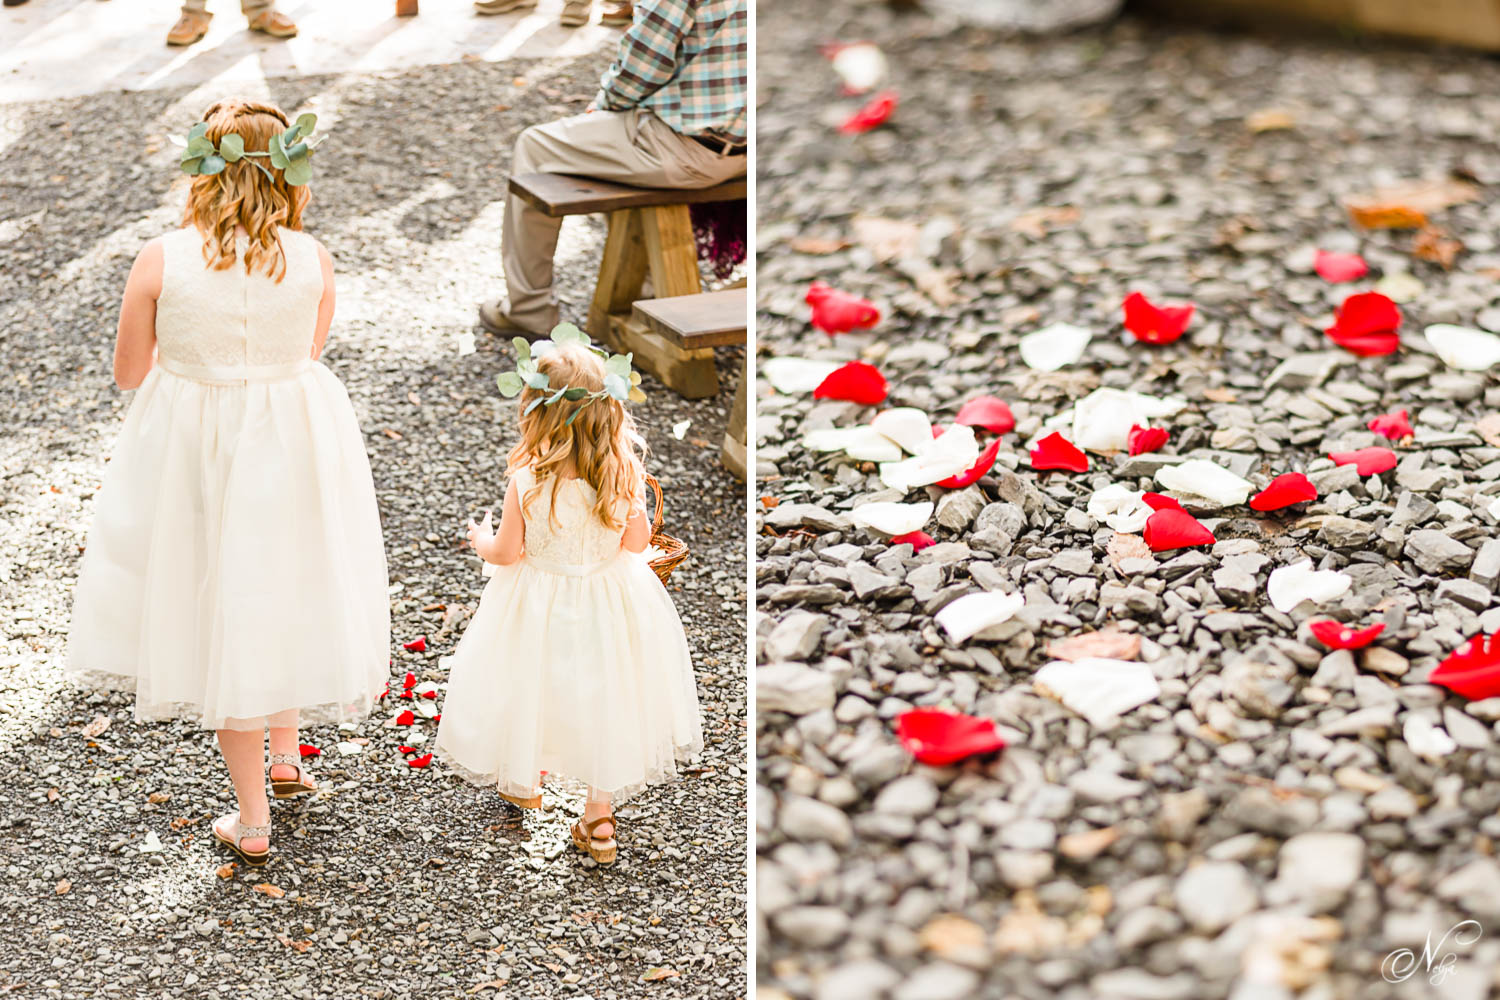 flower girls in cream colored dresses tossing rose petals. And individual rose petals fallen on the gray crushed rock walkway.